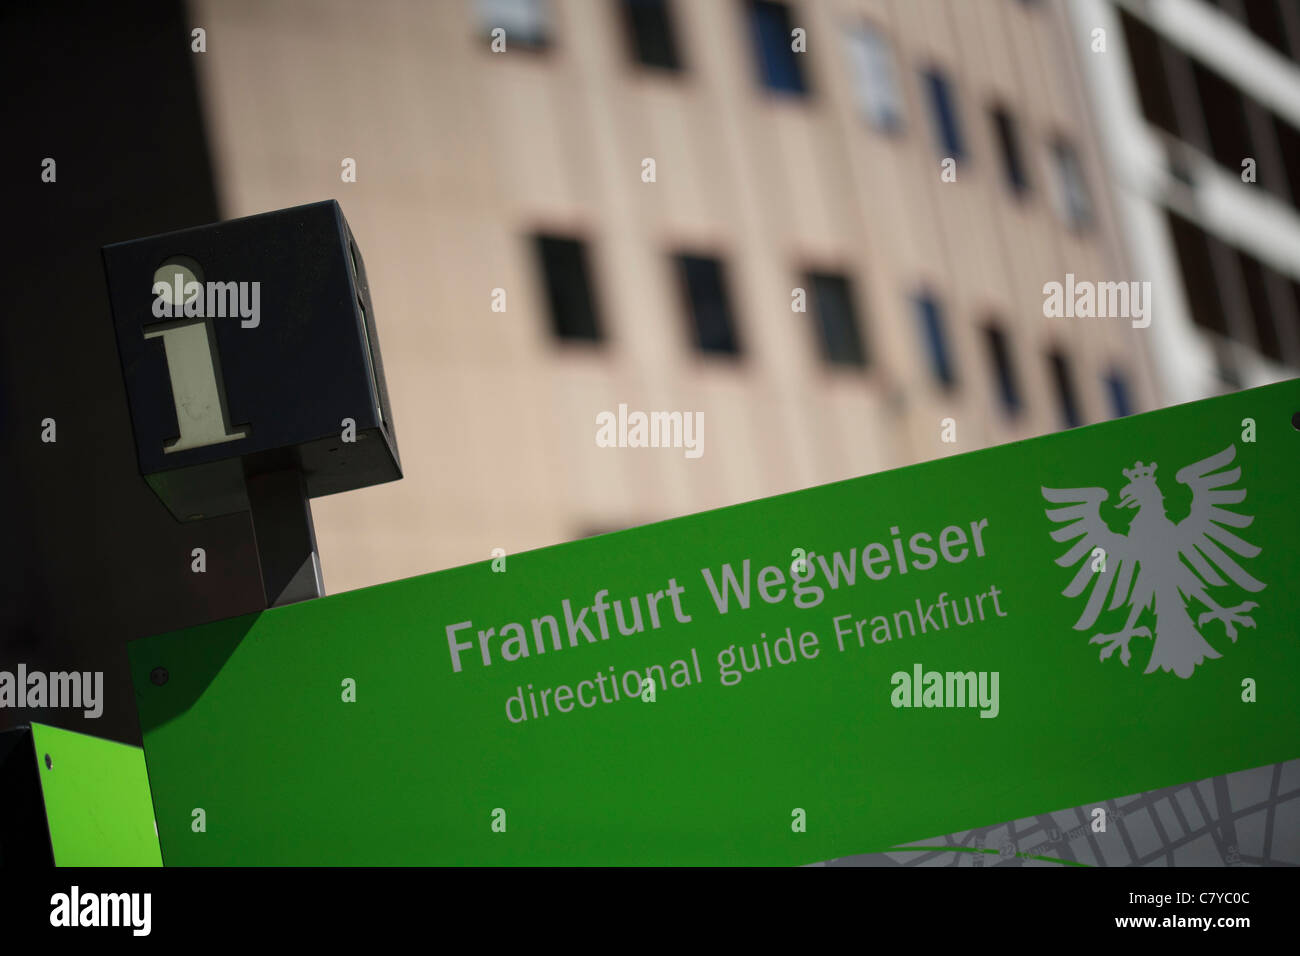 Information sign depicting various points of interest in Frankfurt am Main, Germany. - Stock Image